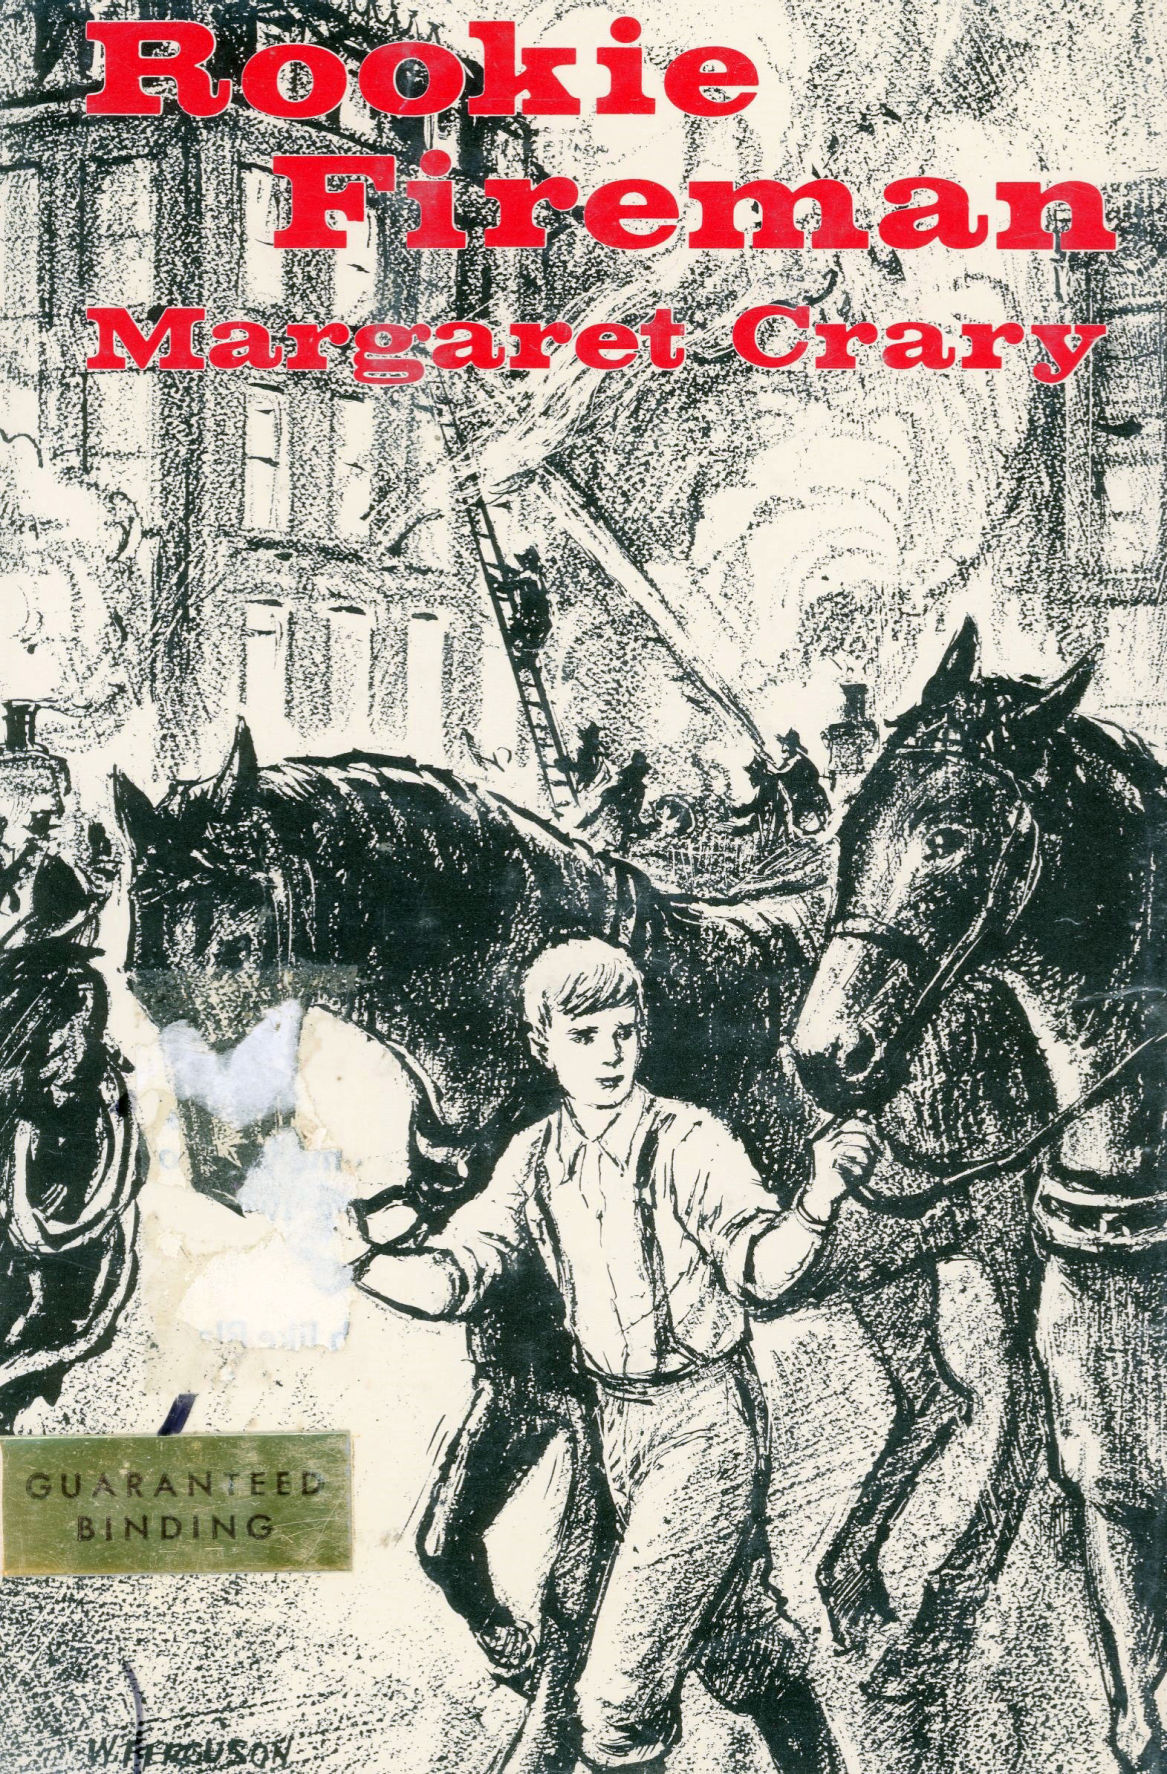 Rookie Fireman by Margaret Crary